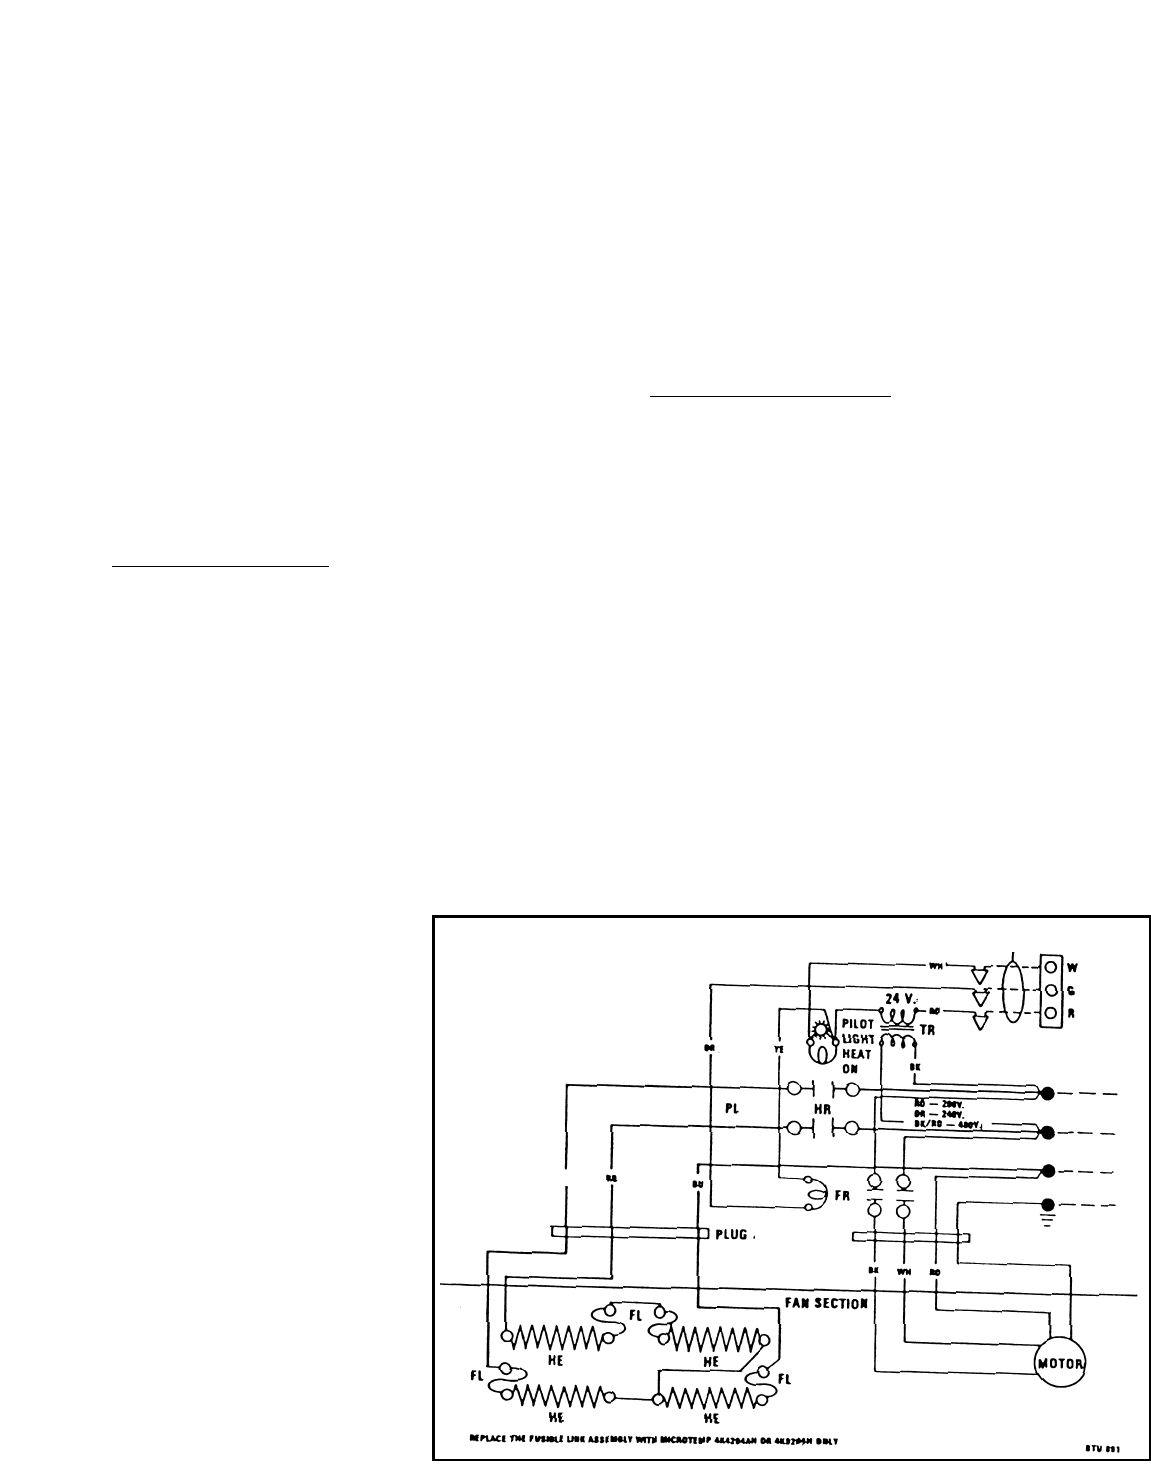 Marley Engineered Products E3606 1325Hfd Users Manual 5200 ... on 240v baseboard heater wiring diagram, 220 volt programmable thermostat, 220v well pump wiring diagram, 220v motor wiring diagram, 220 air compressor wiring diagram, 110-volt wiring diagram, 110 220 motor wiring diagram, 220 well pump wiring diagram, 220 volt wireless thermostat, 220 volt thermostat honeywell, electric baseboard heater wiring diagram,